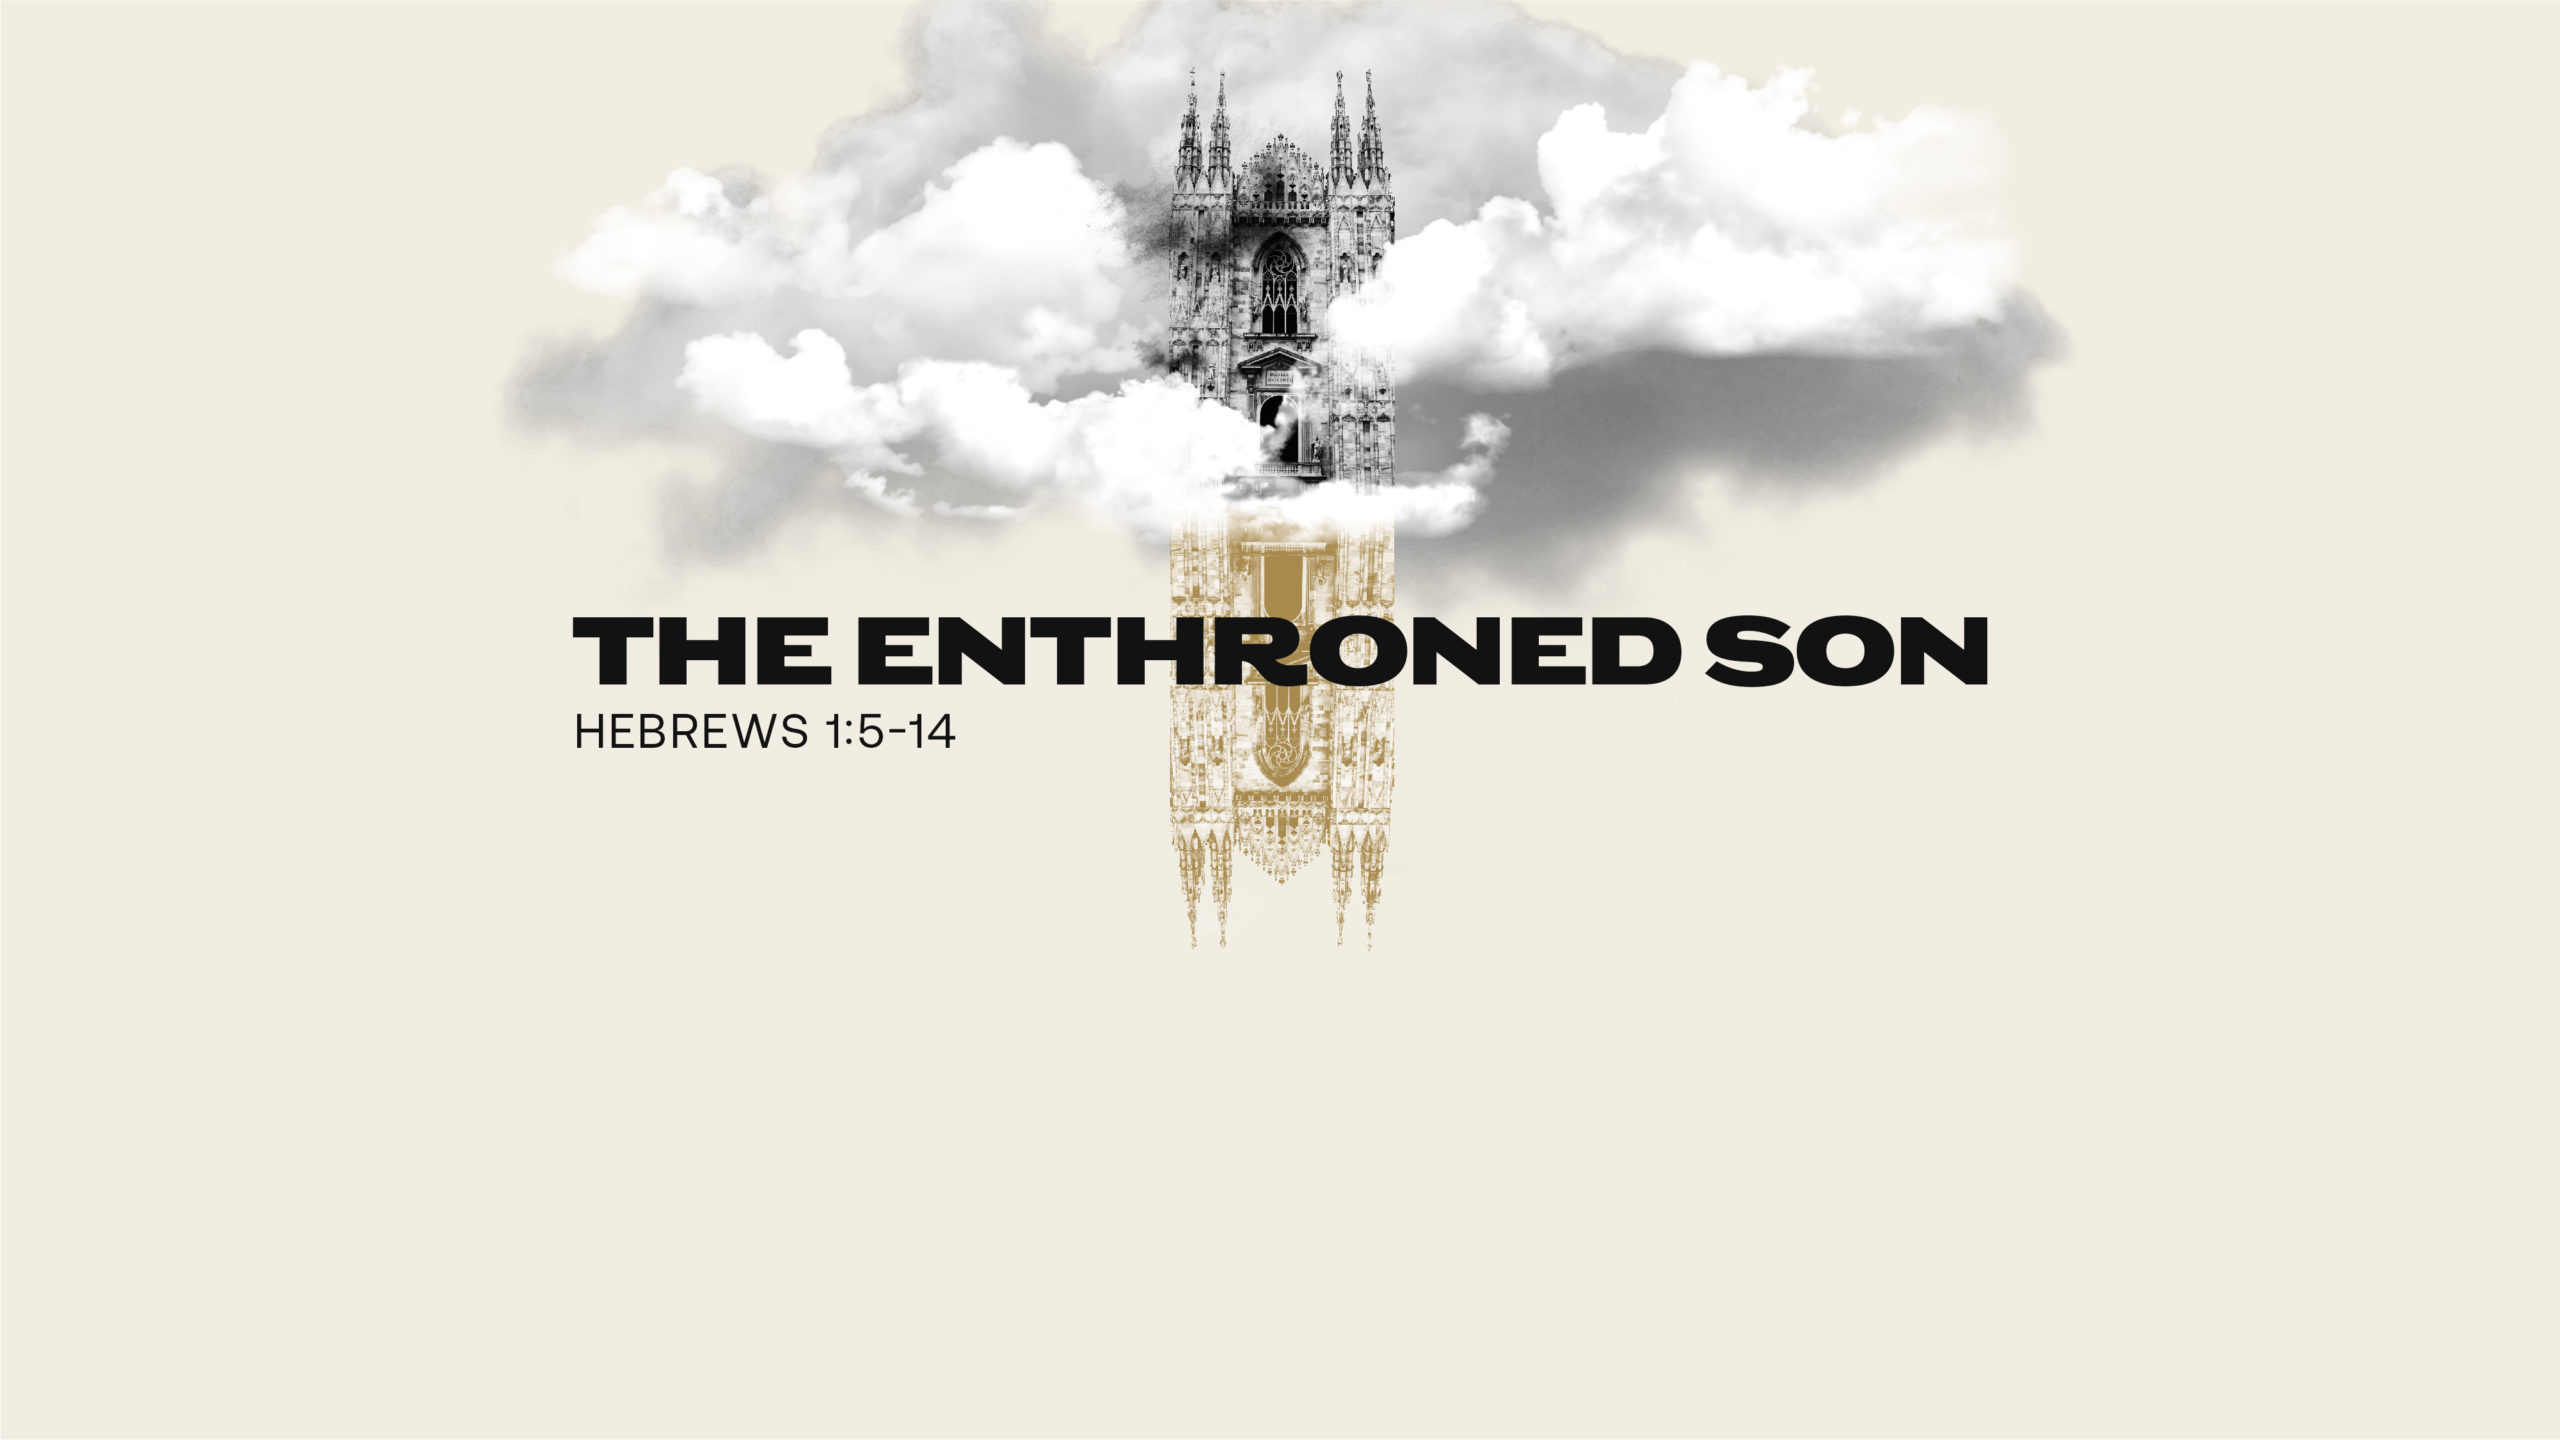 The Enthroned Son